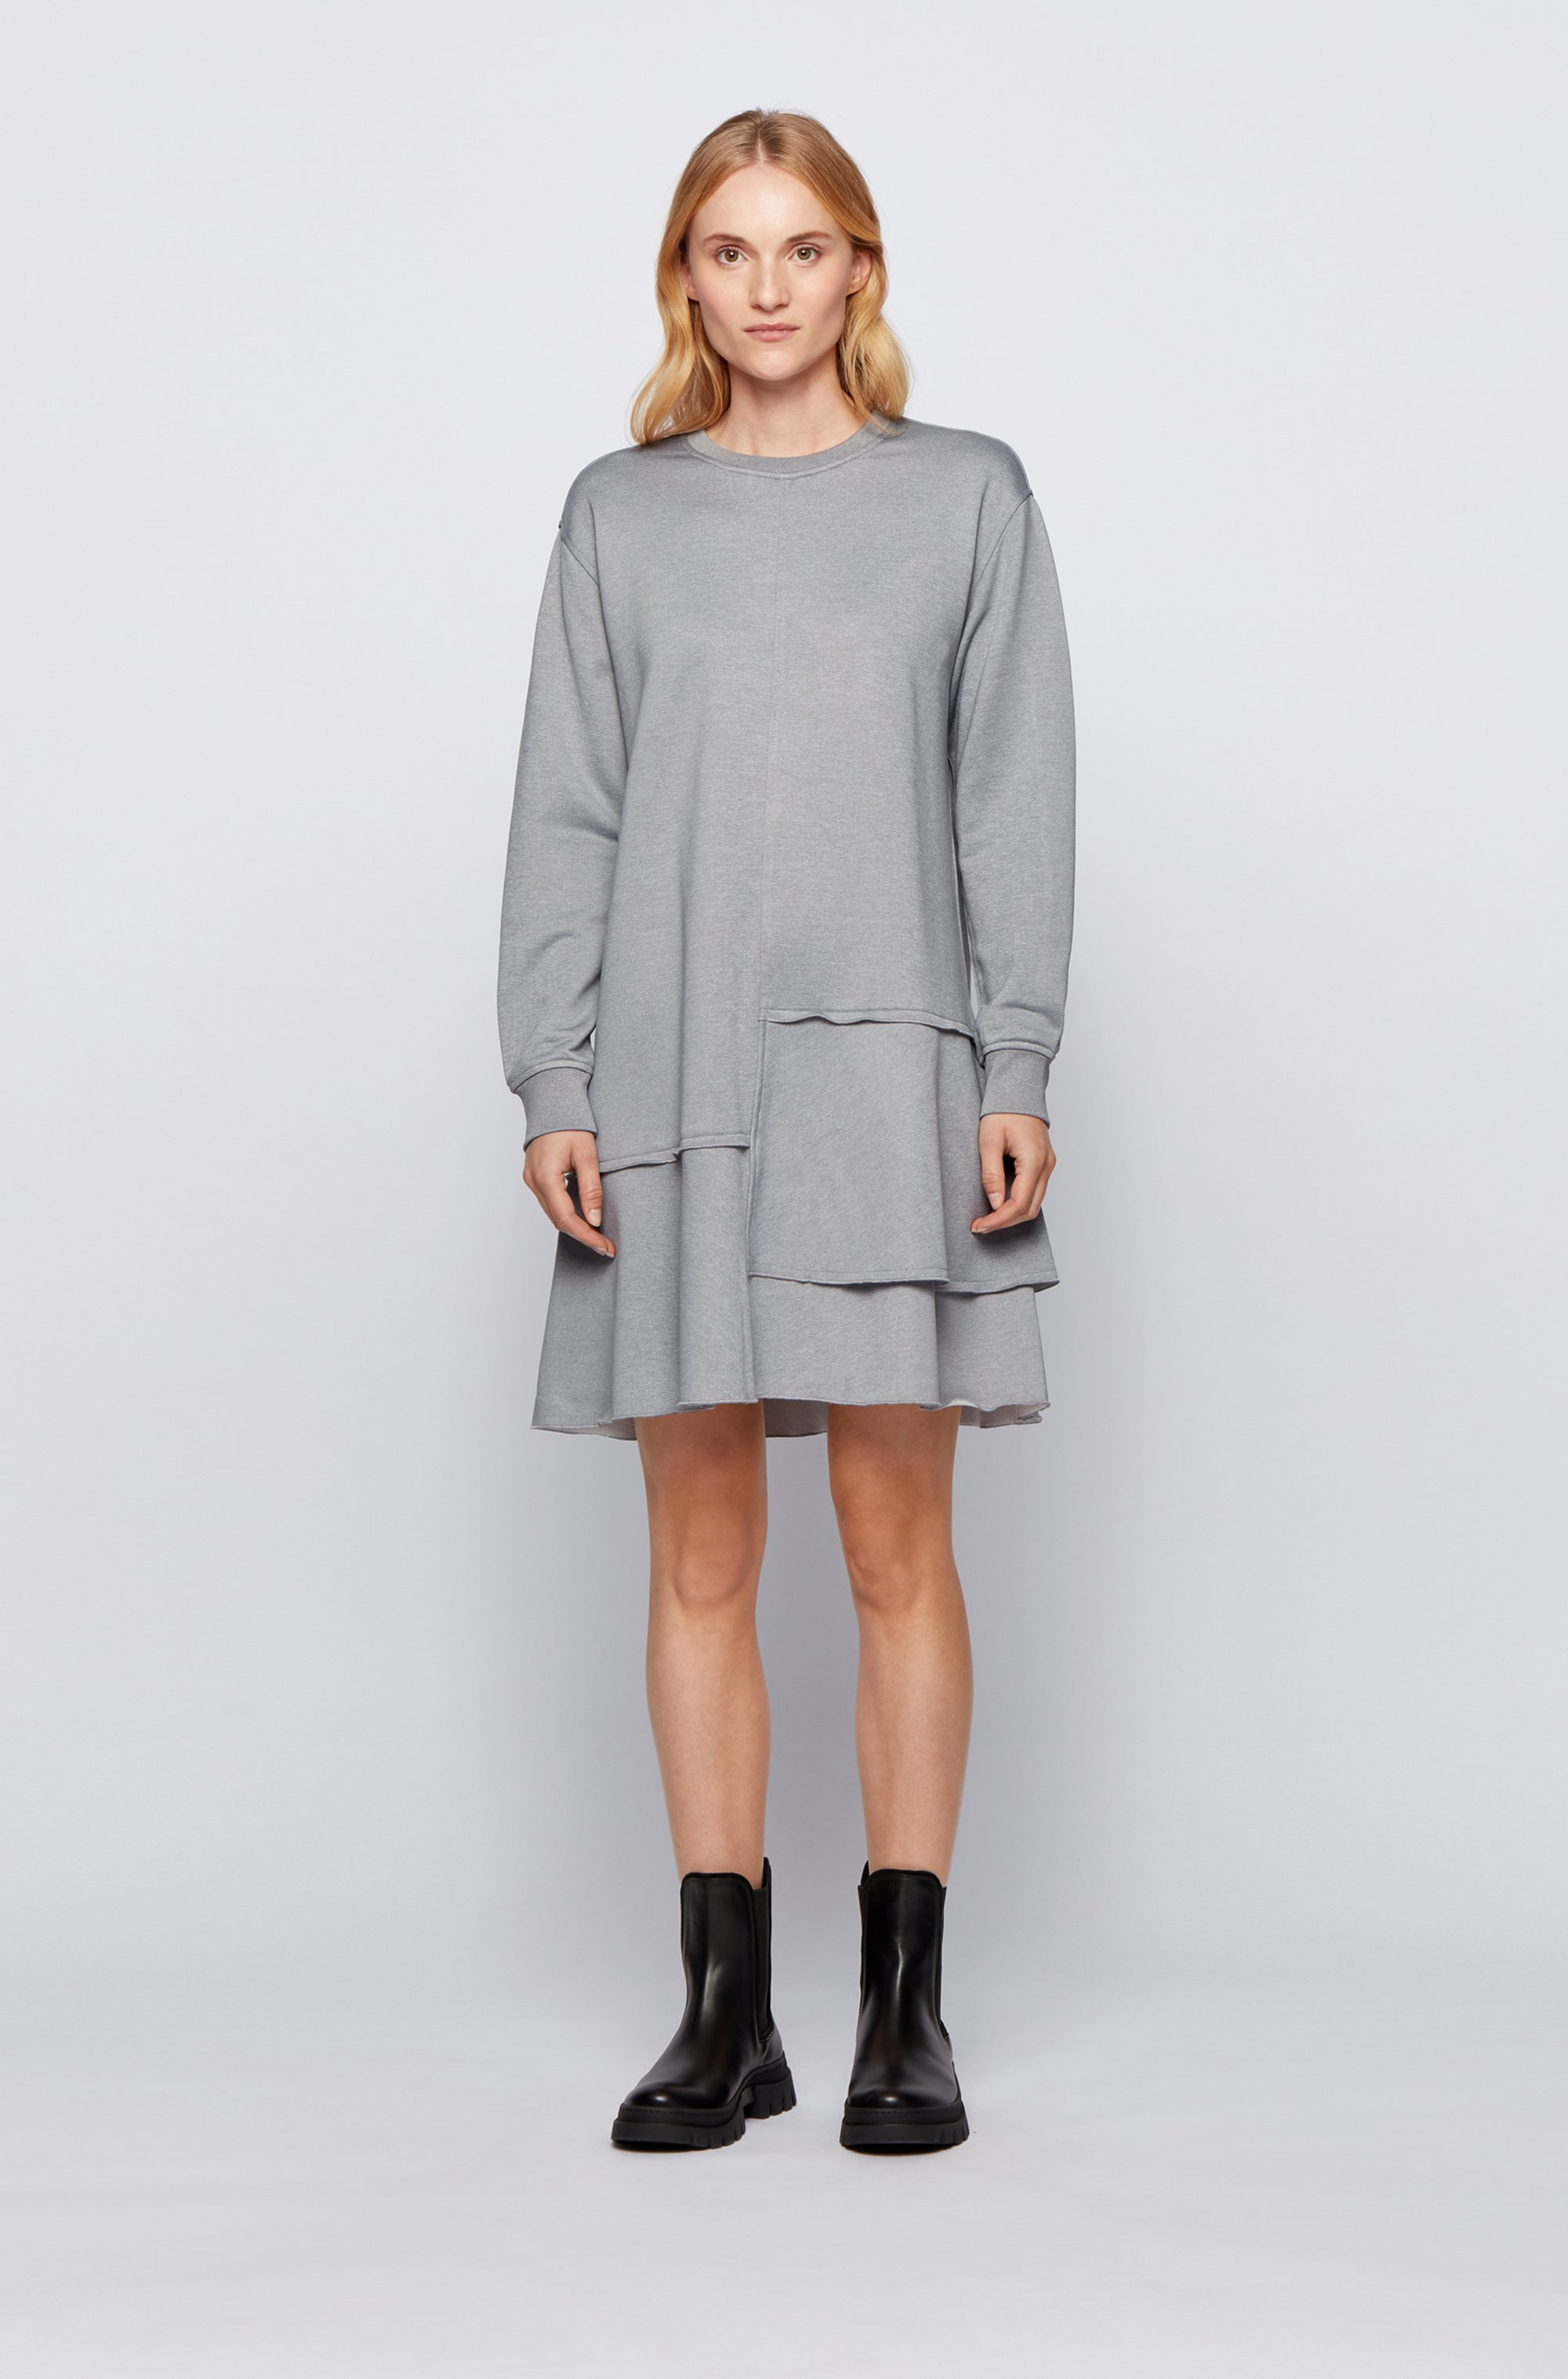 Relaxed-fit dress with dropped waist and flounce hem